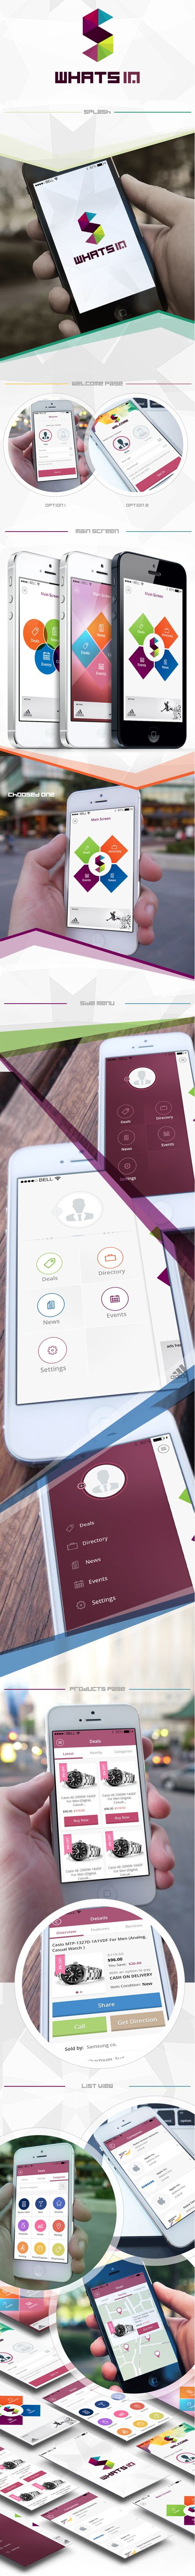 55 Amazing Mobile App UI Designs with Ultimate User Experience - 41